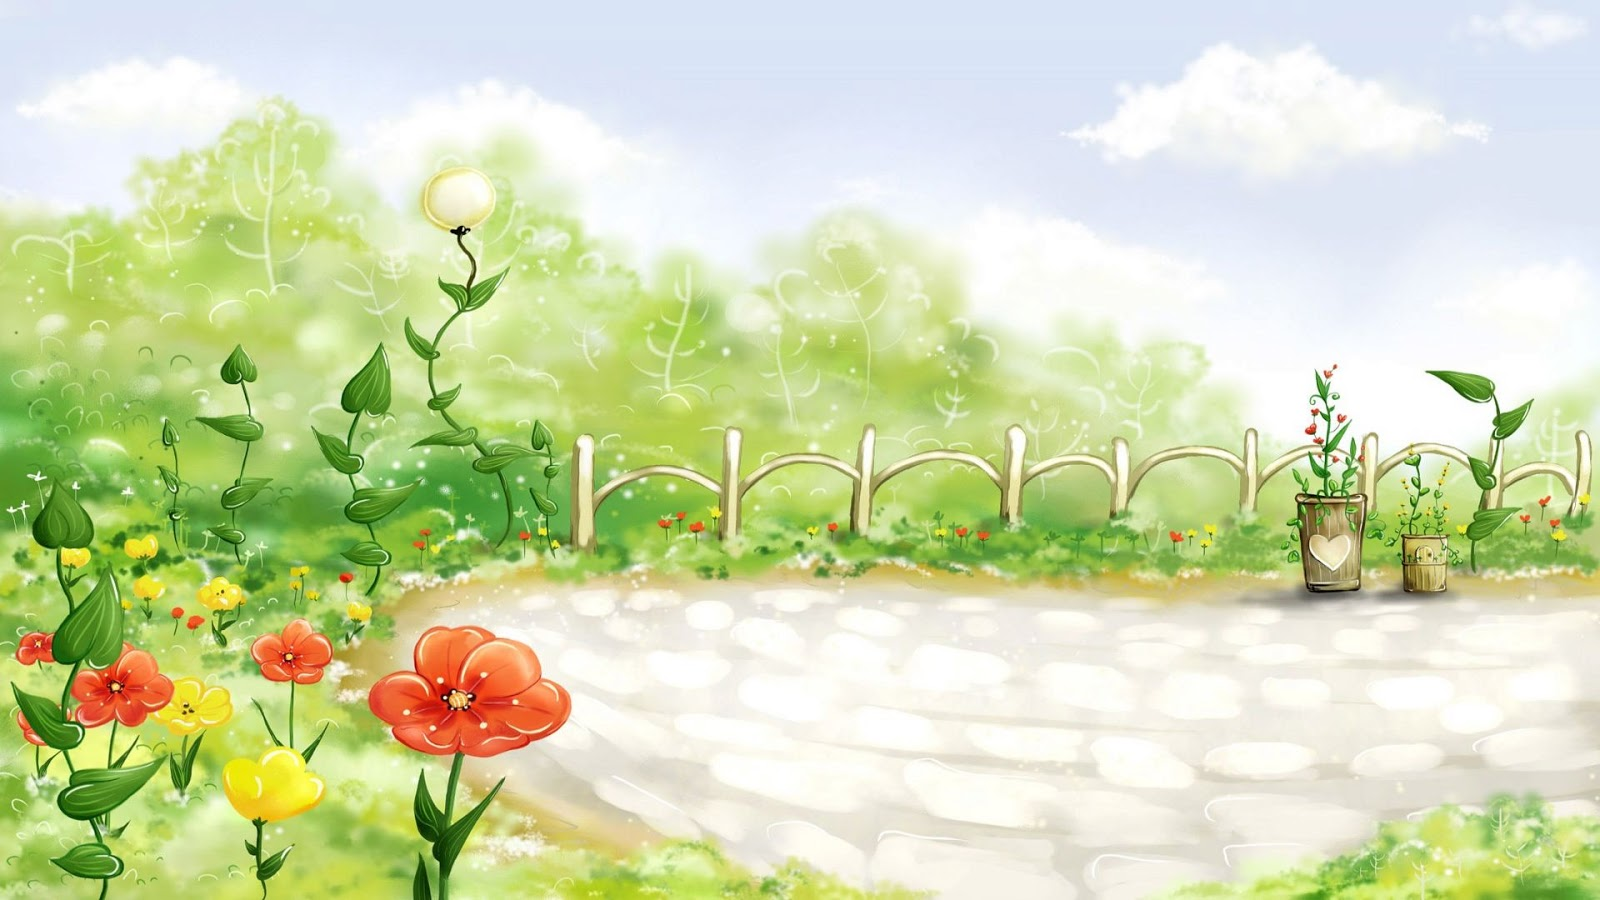 Cartoon Garden Wallpaper Free Desktop Screensavers Downloads Wallpapers And